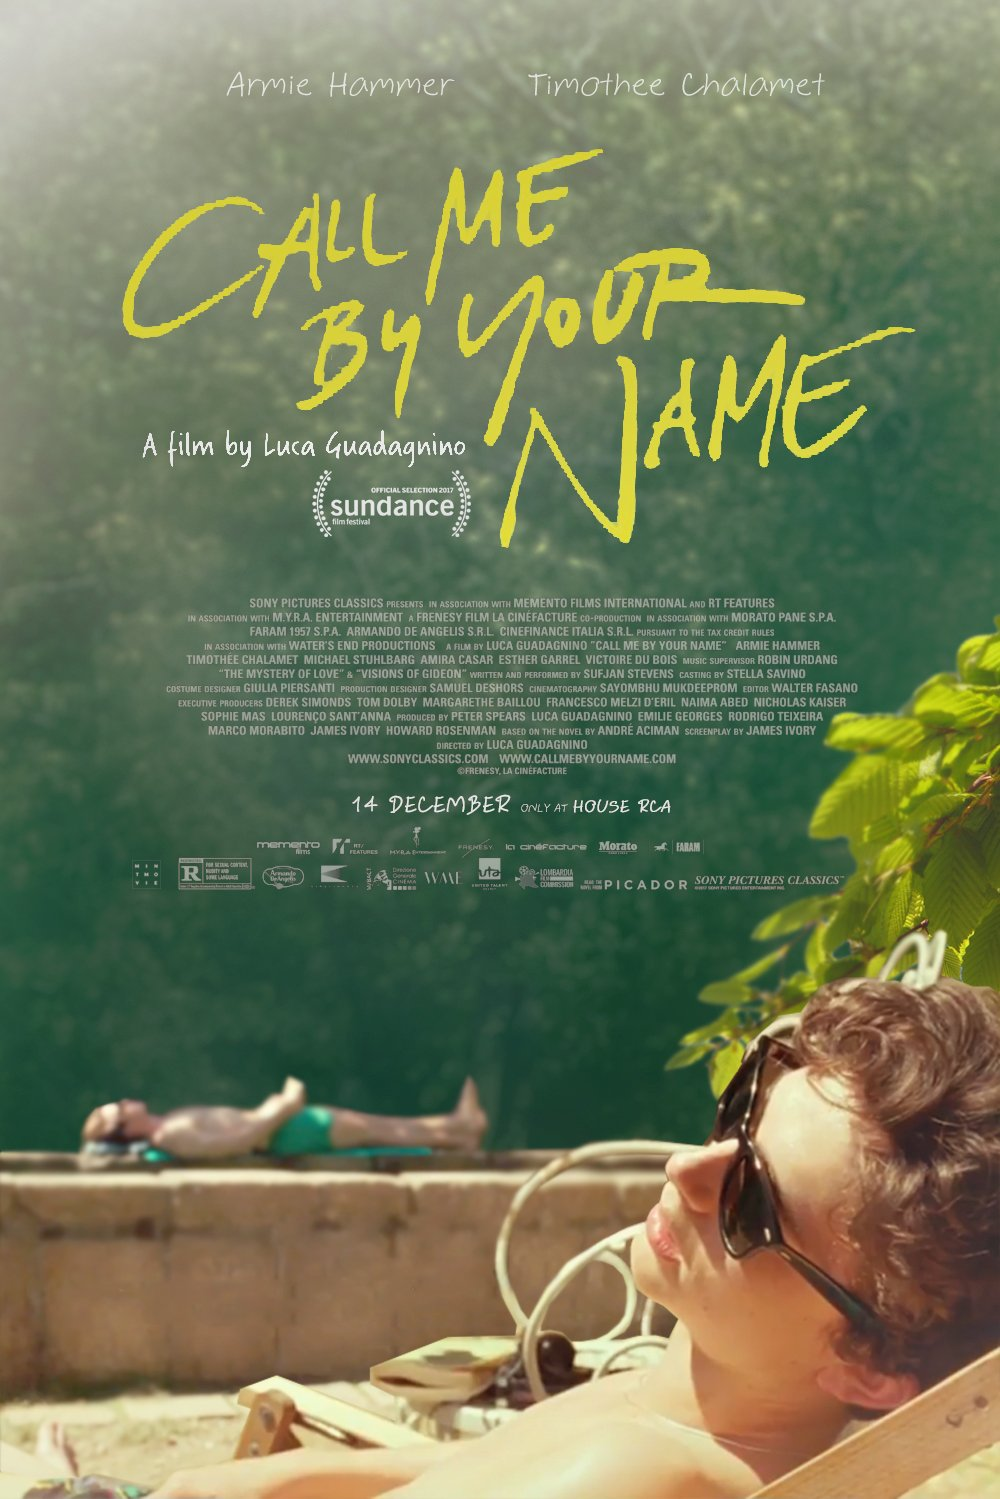 Call-Me-By-Your-Name-Film-Poster-2017.jpg